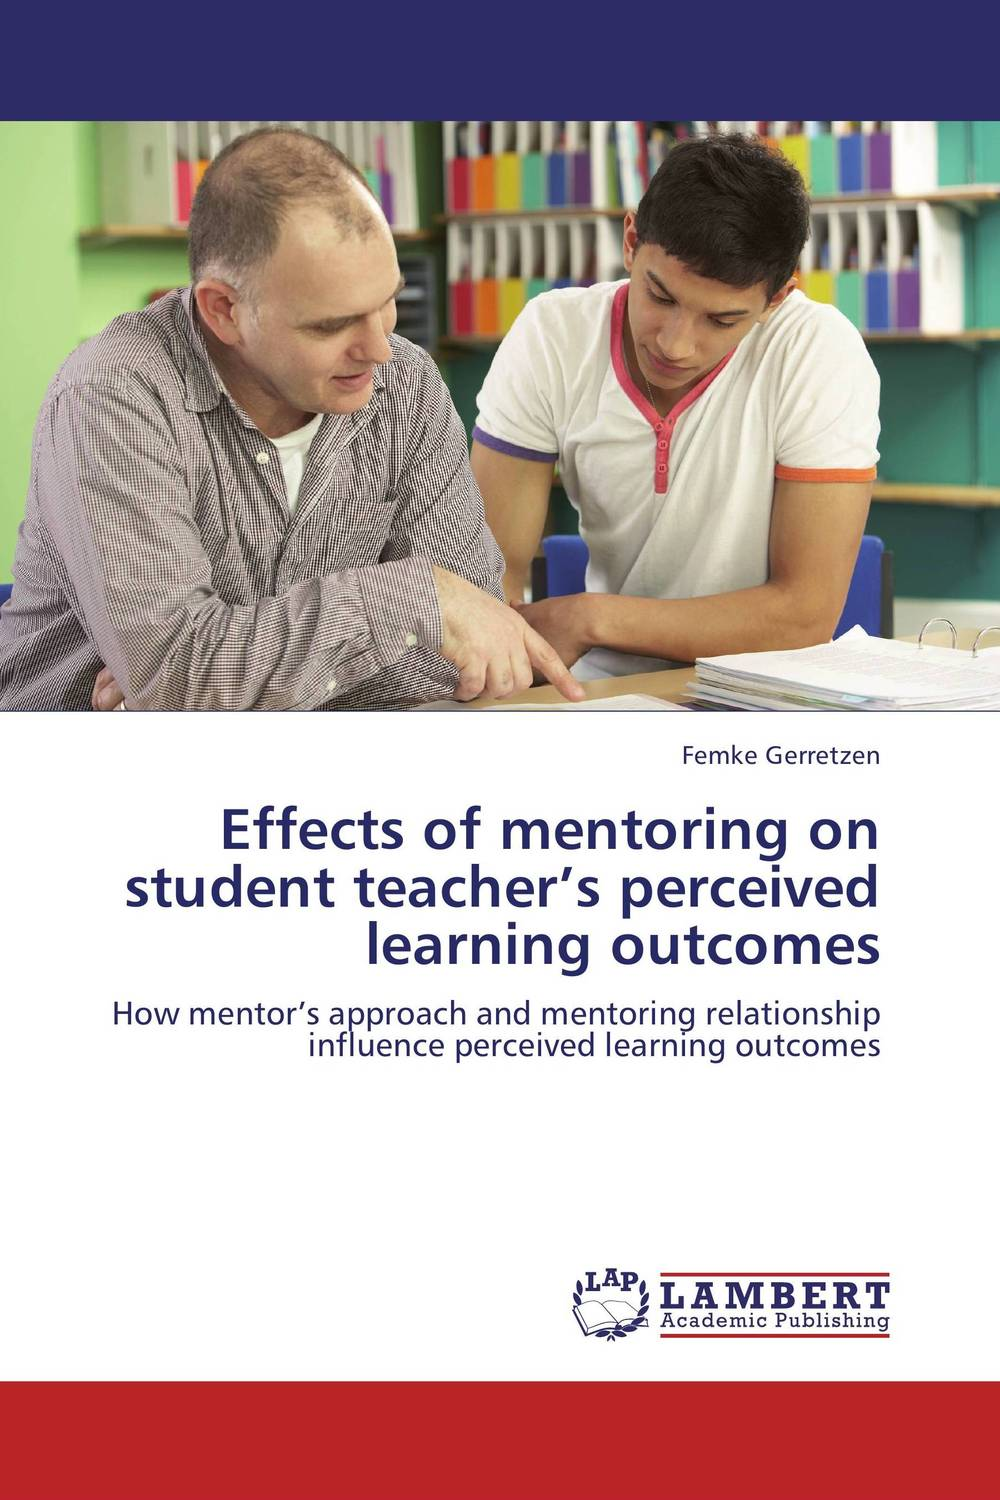 Effects of mentoring on student teacher's perceived learning outcomes